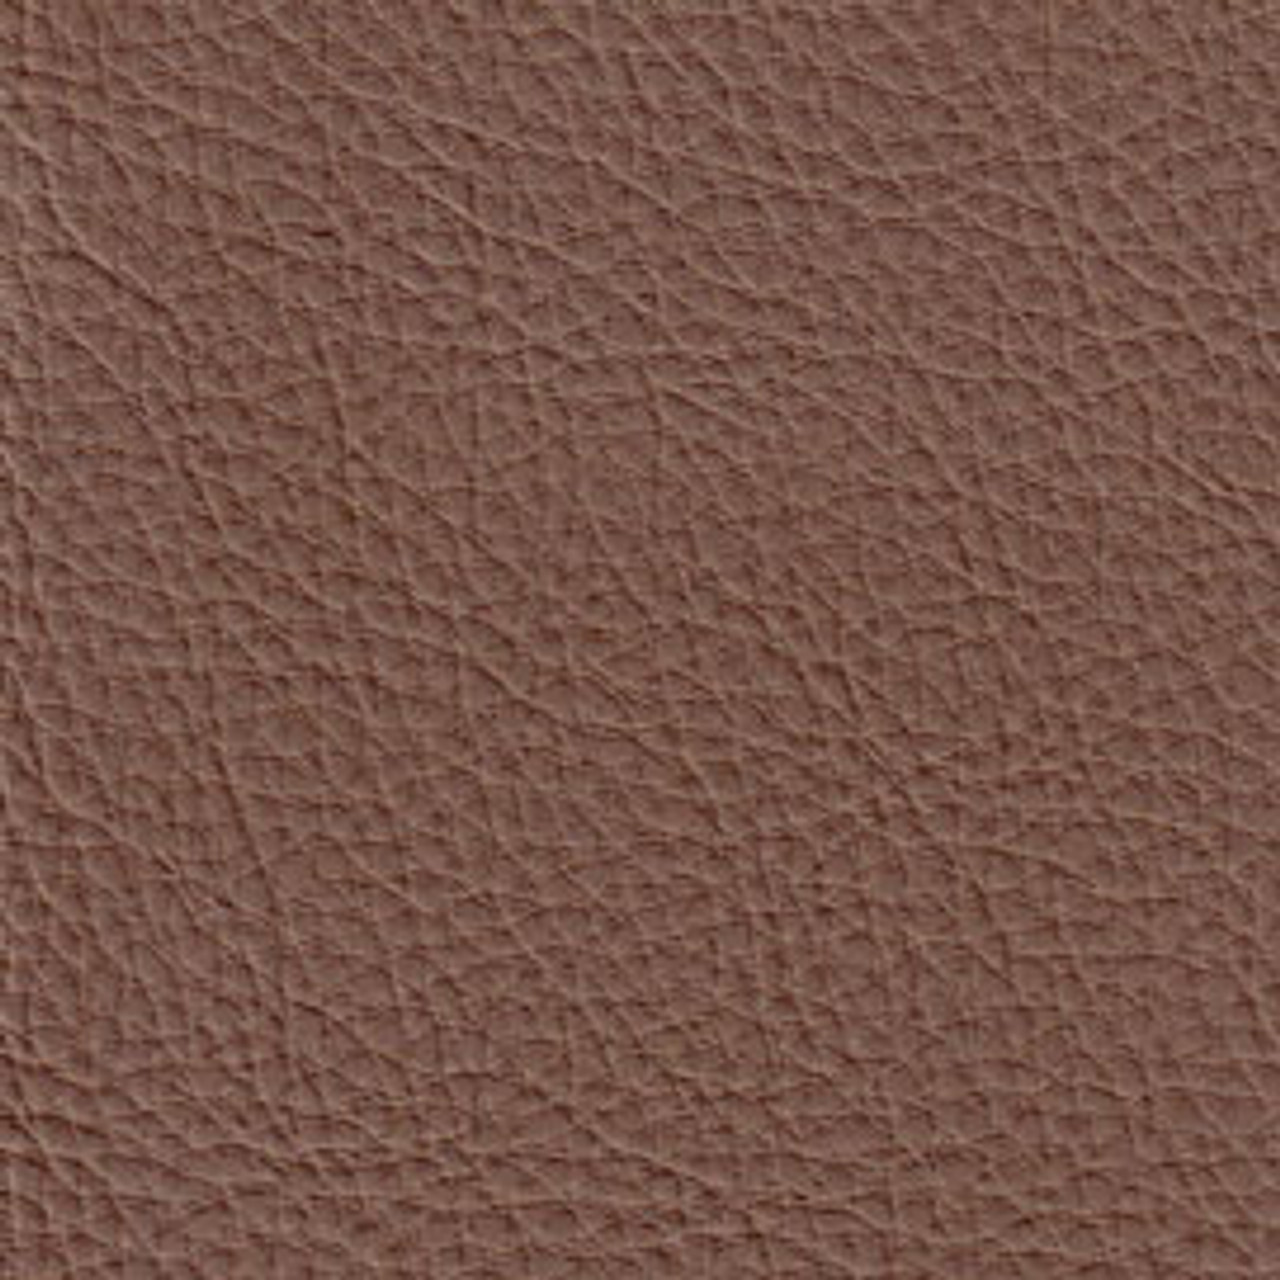 "Prodigy Light Sandlewood #685 Vinyl 54"" - Sold by the CONTINUOUS YARD!"